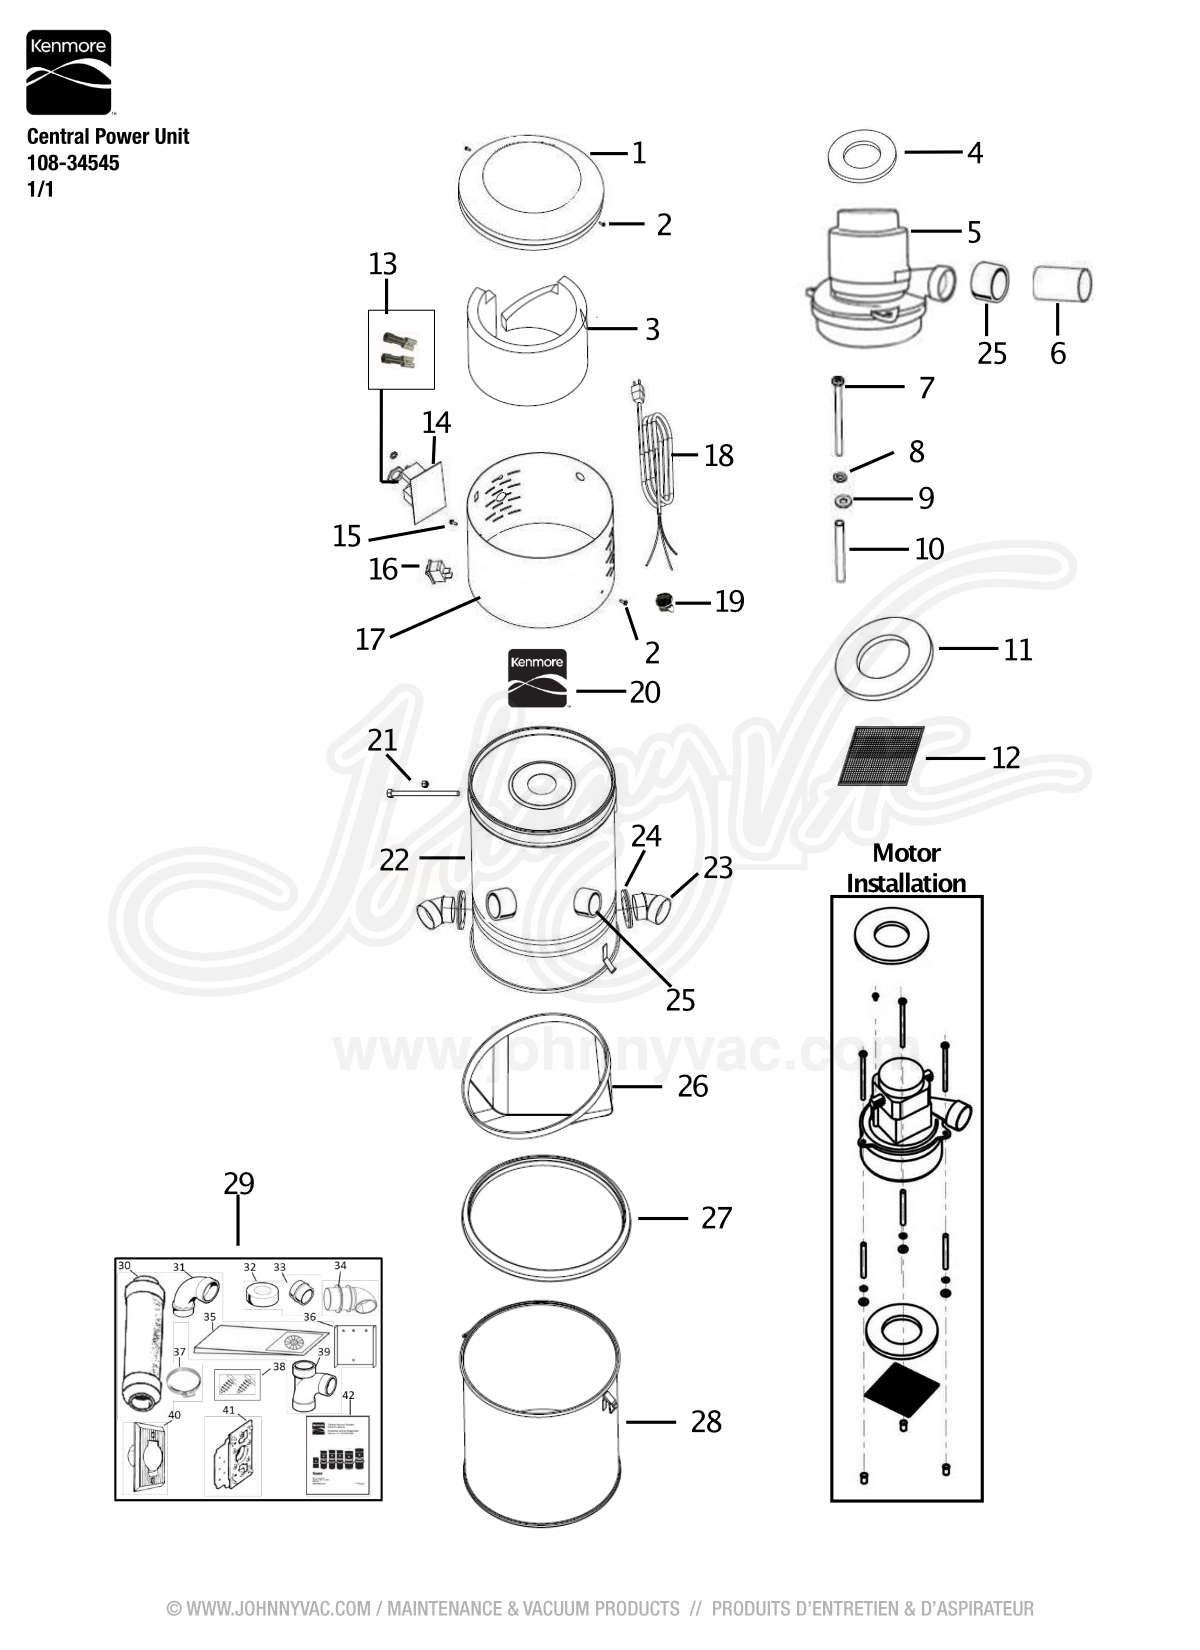 Assembly Diagram Parts List For Model